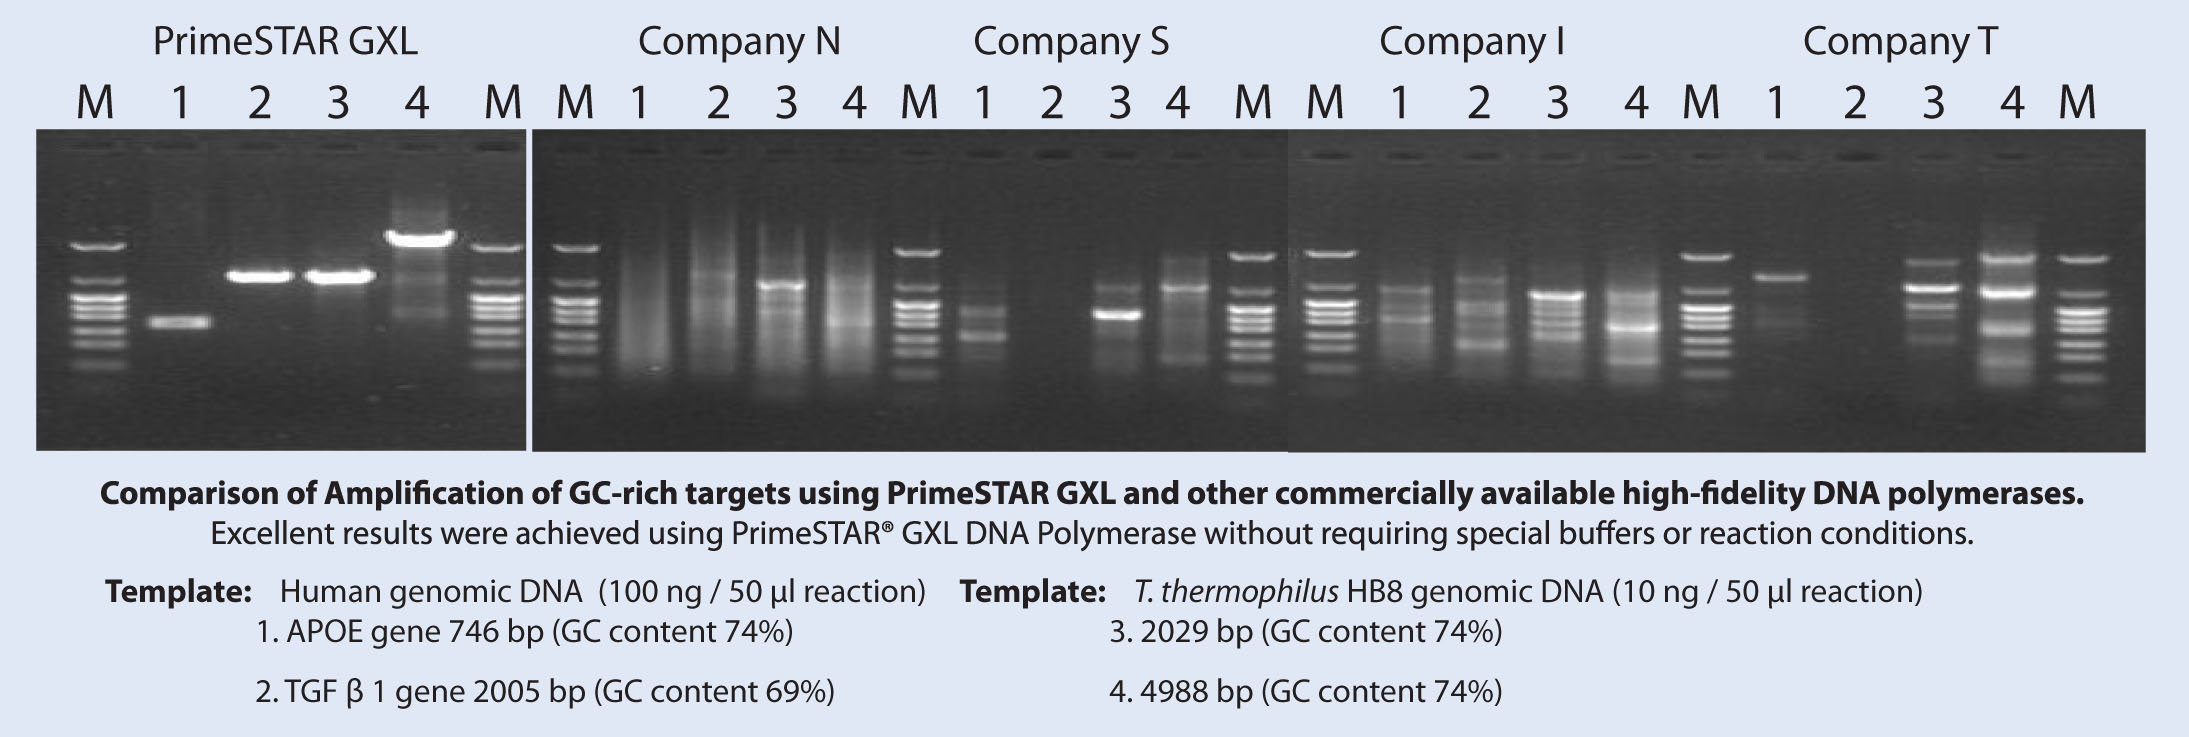 Examples of product yield on GC-rich templates: comparison of PrimeSTAR GXL DNA Polymerase with four other commercially available high-fidelity DNA polymerases